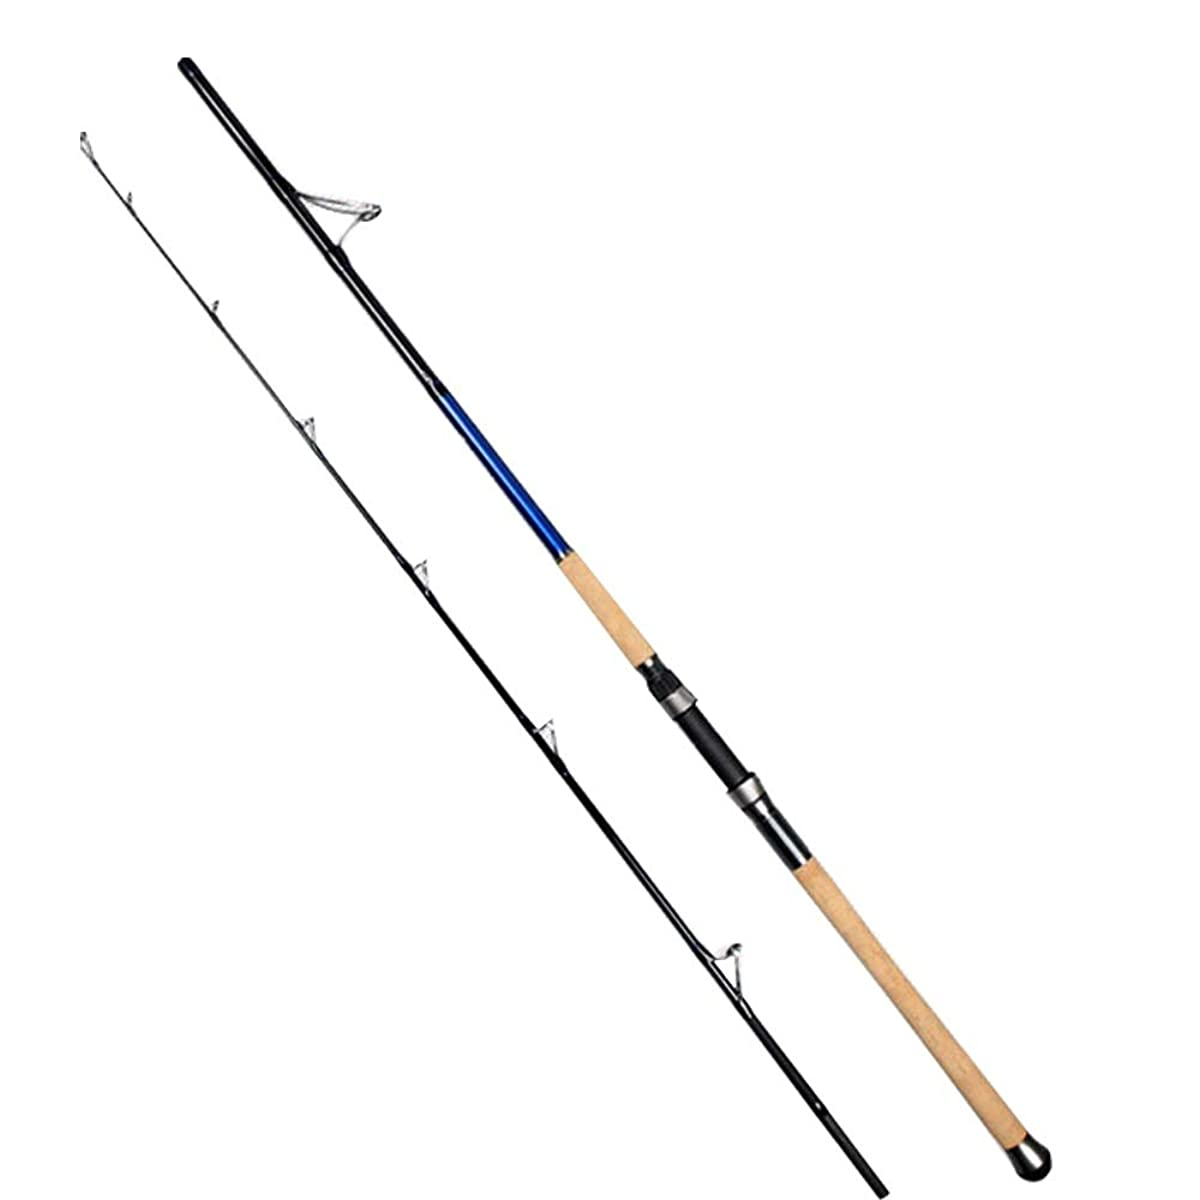 Chitty Carbon Boat Fishing Rod Iron Plate Fishing Rod Carbon Deep Sea Boat Fishing Rod 2.1 Meters Super Hard Straight Handle Lei Qiang XH Black Fishing Rod Convenient